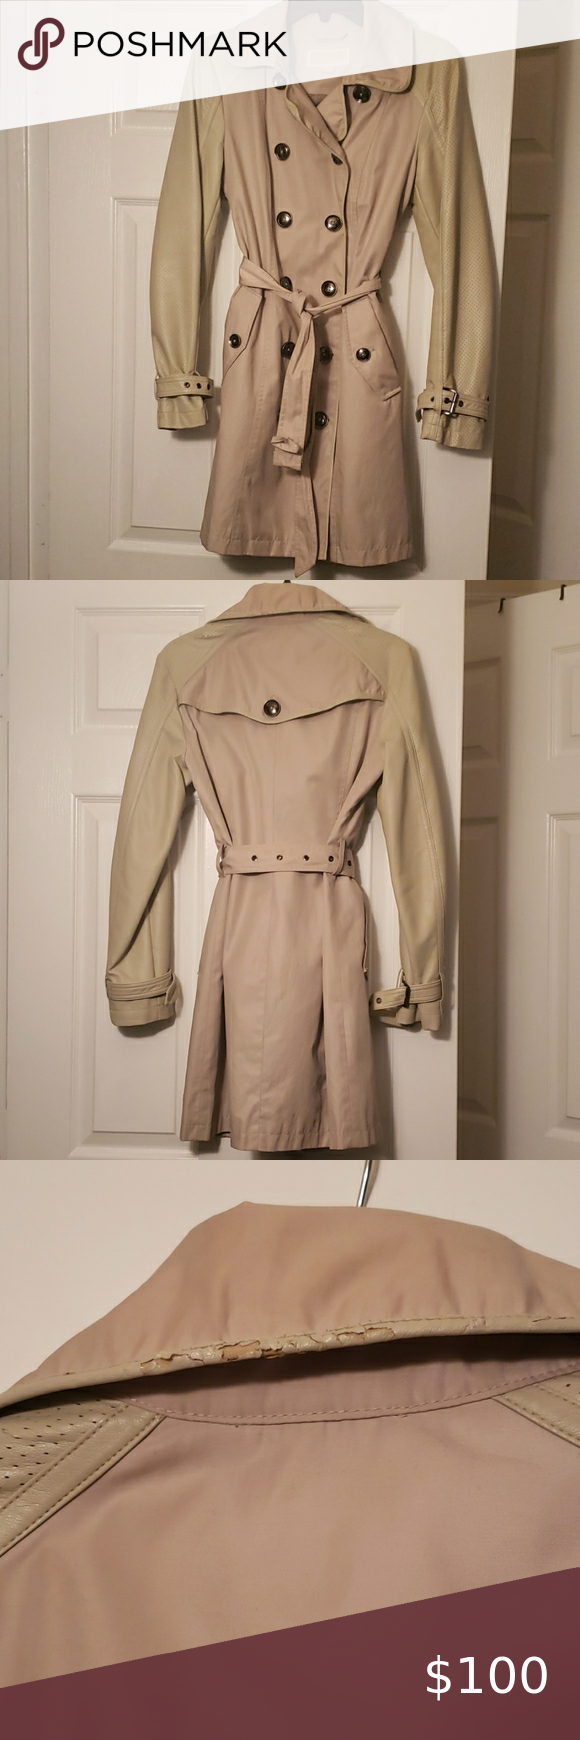 Michael Kors Coat Michael Kors Trench Coat Faux Leather Sleeves Upper Front Back Double Breasted Buckle Missing On Michael Kors Jackets Michael Kors Coat [ 1740 x 580 Pixel ]